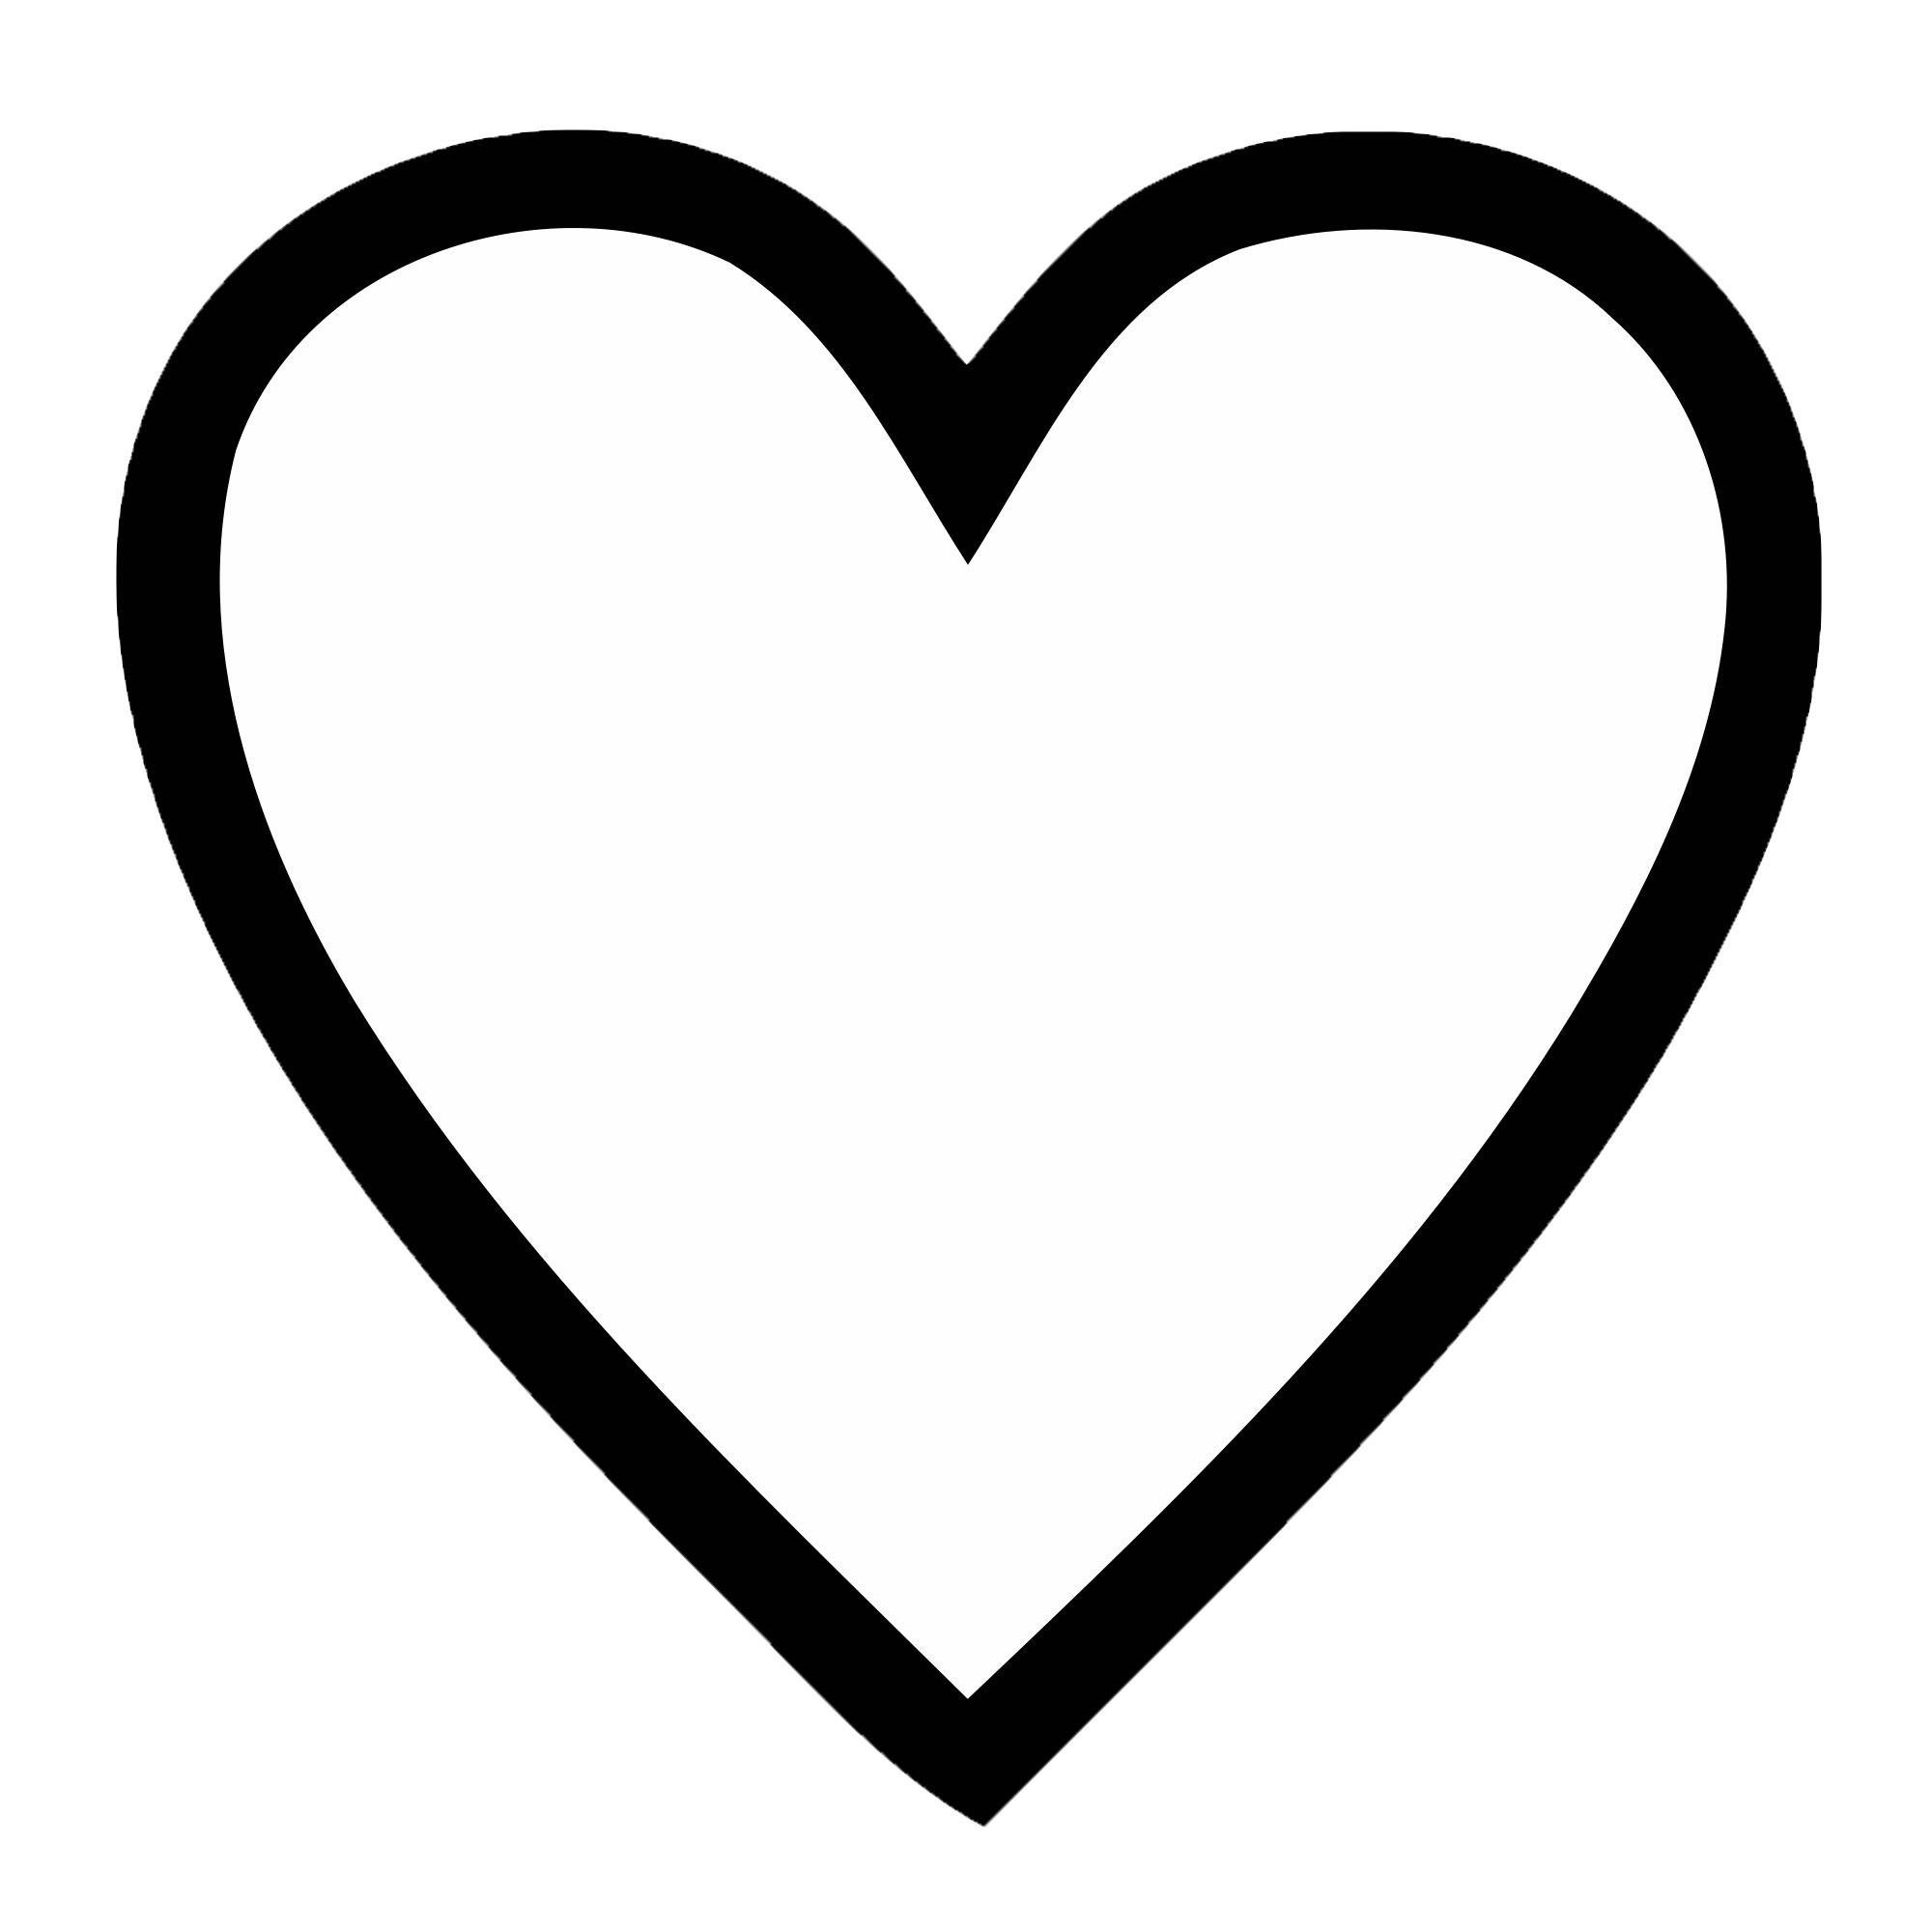 Heart Png Black Transparent.